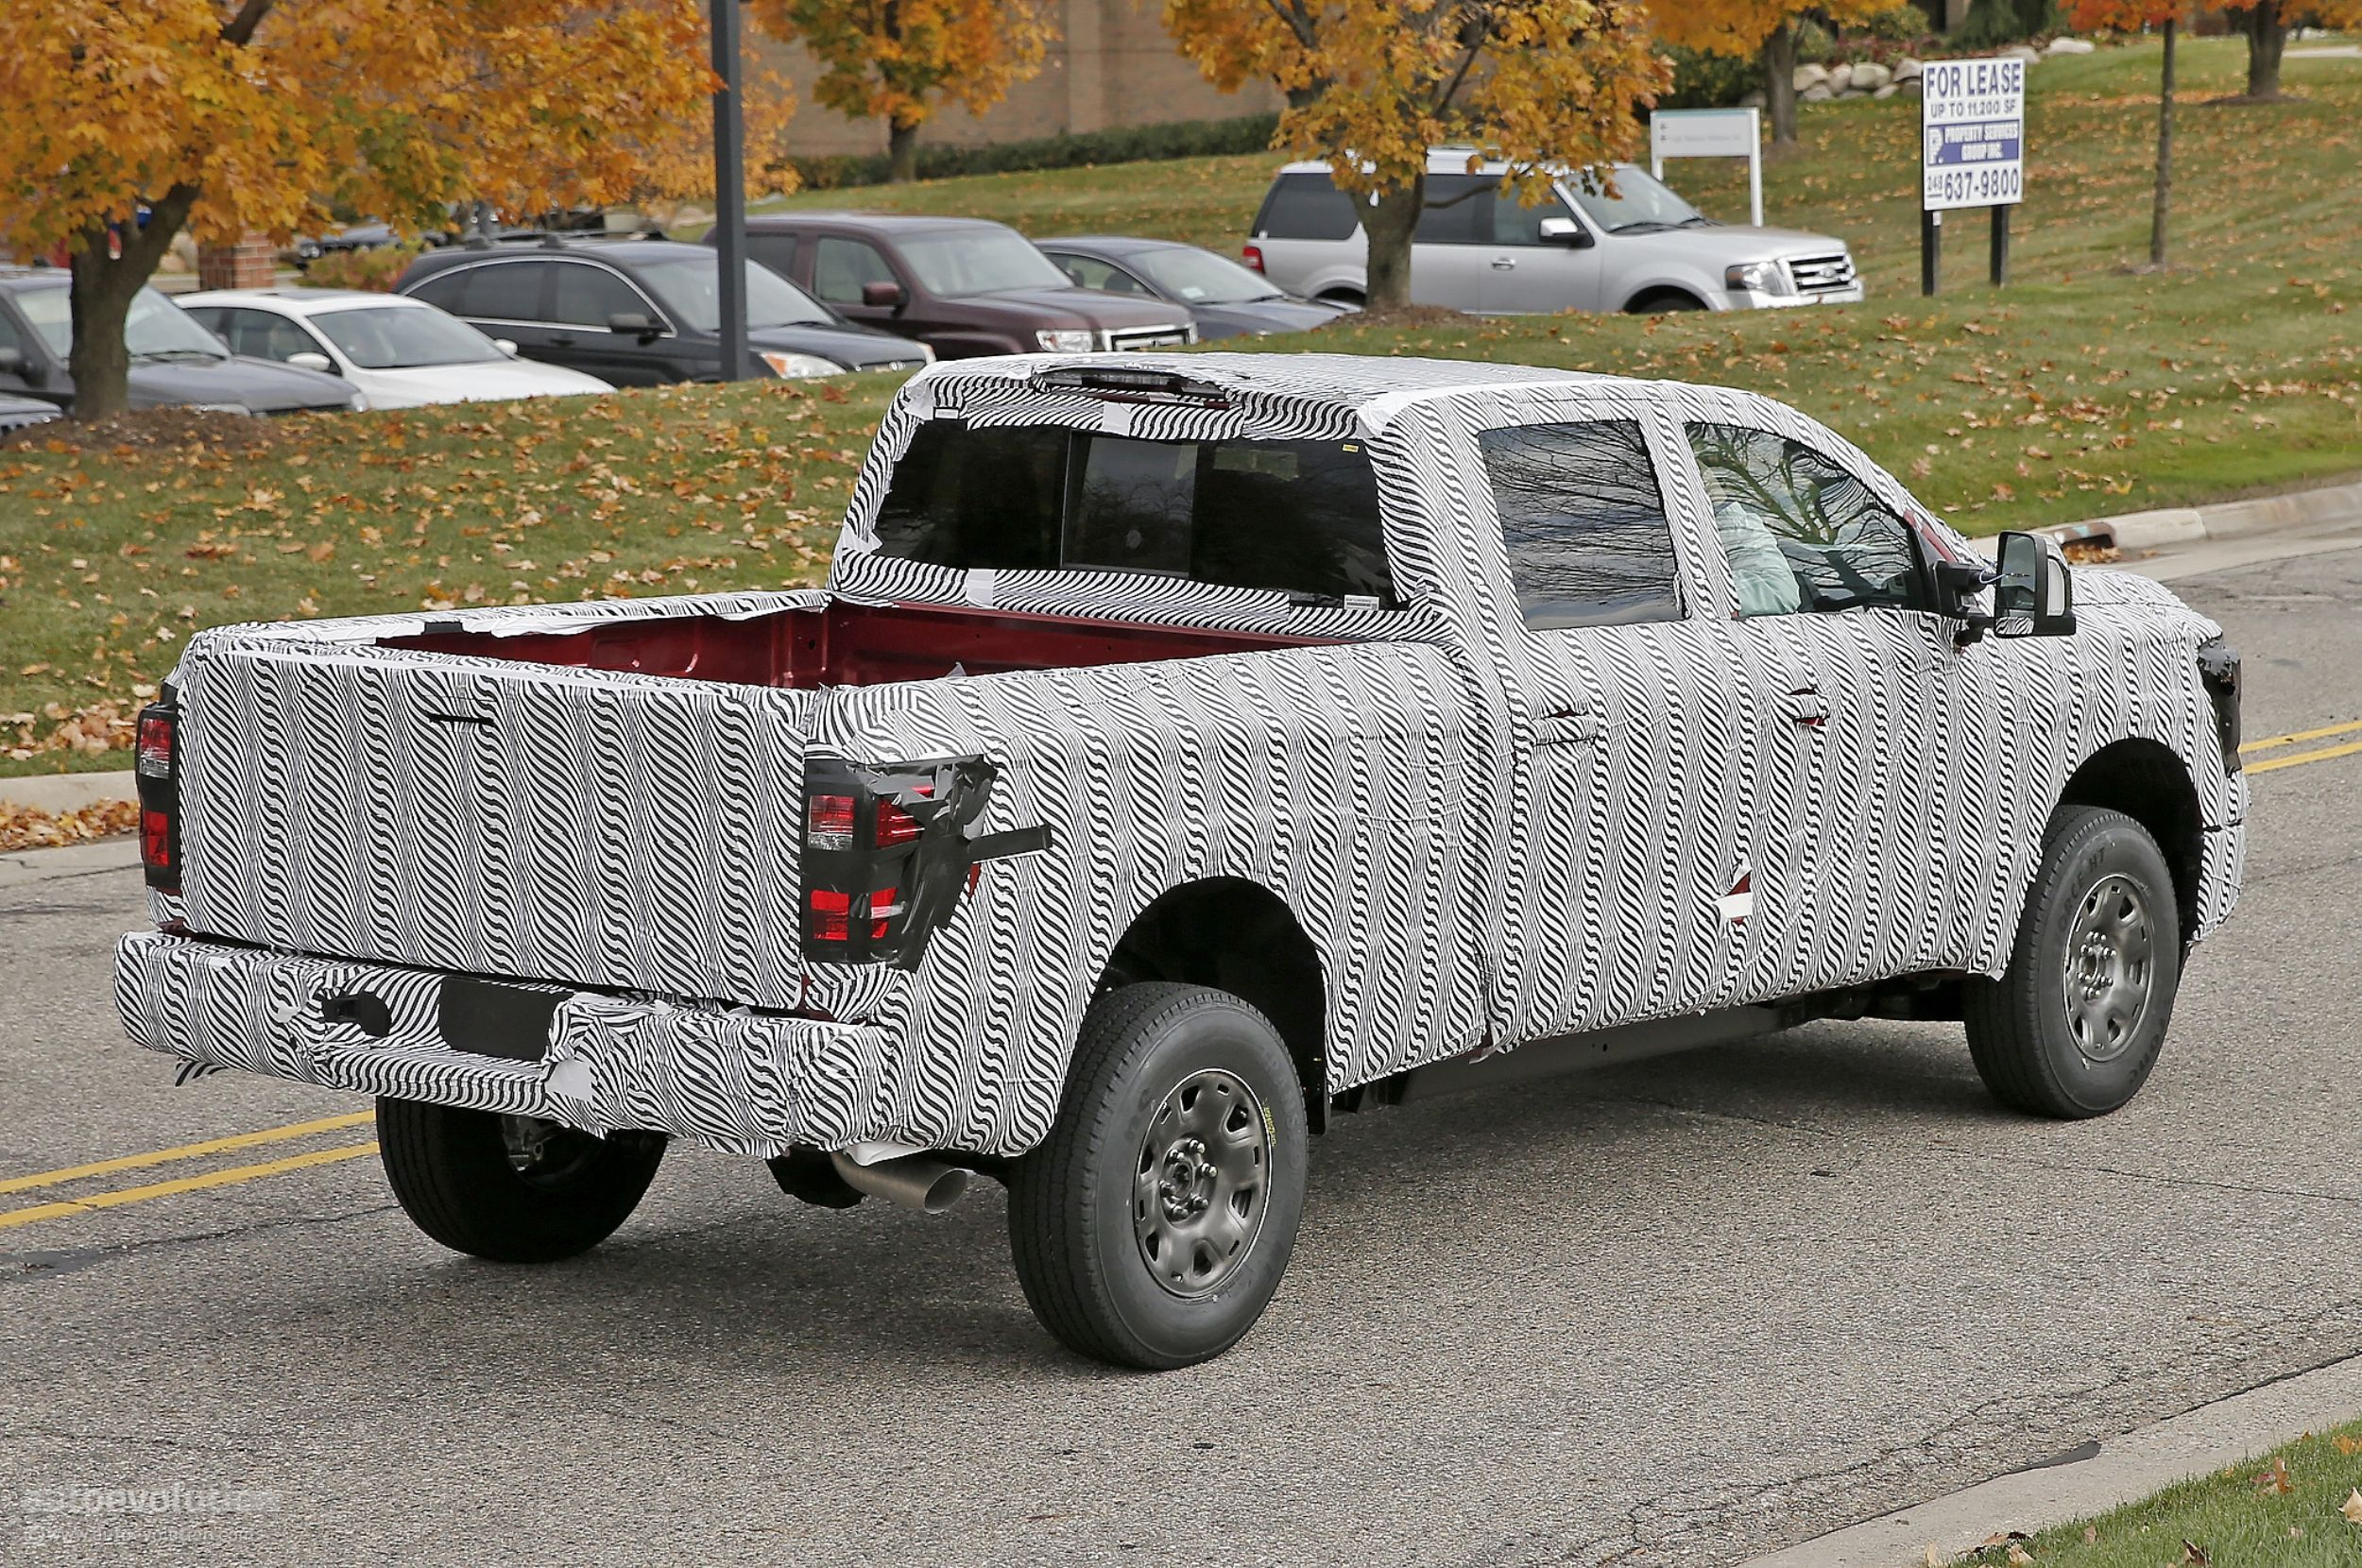 2016 nissan titan spied testing isv cummins turbo diesel. Black Bedroom Furniture Sets. Home Design Ideas